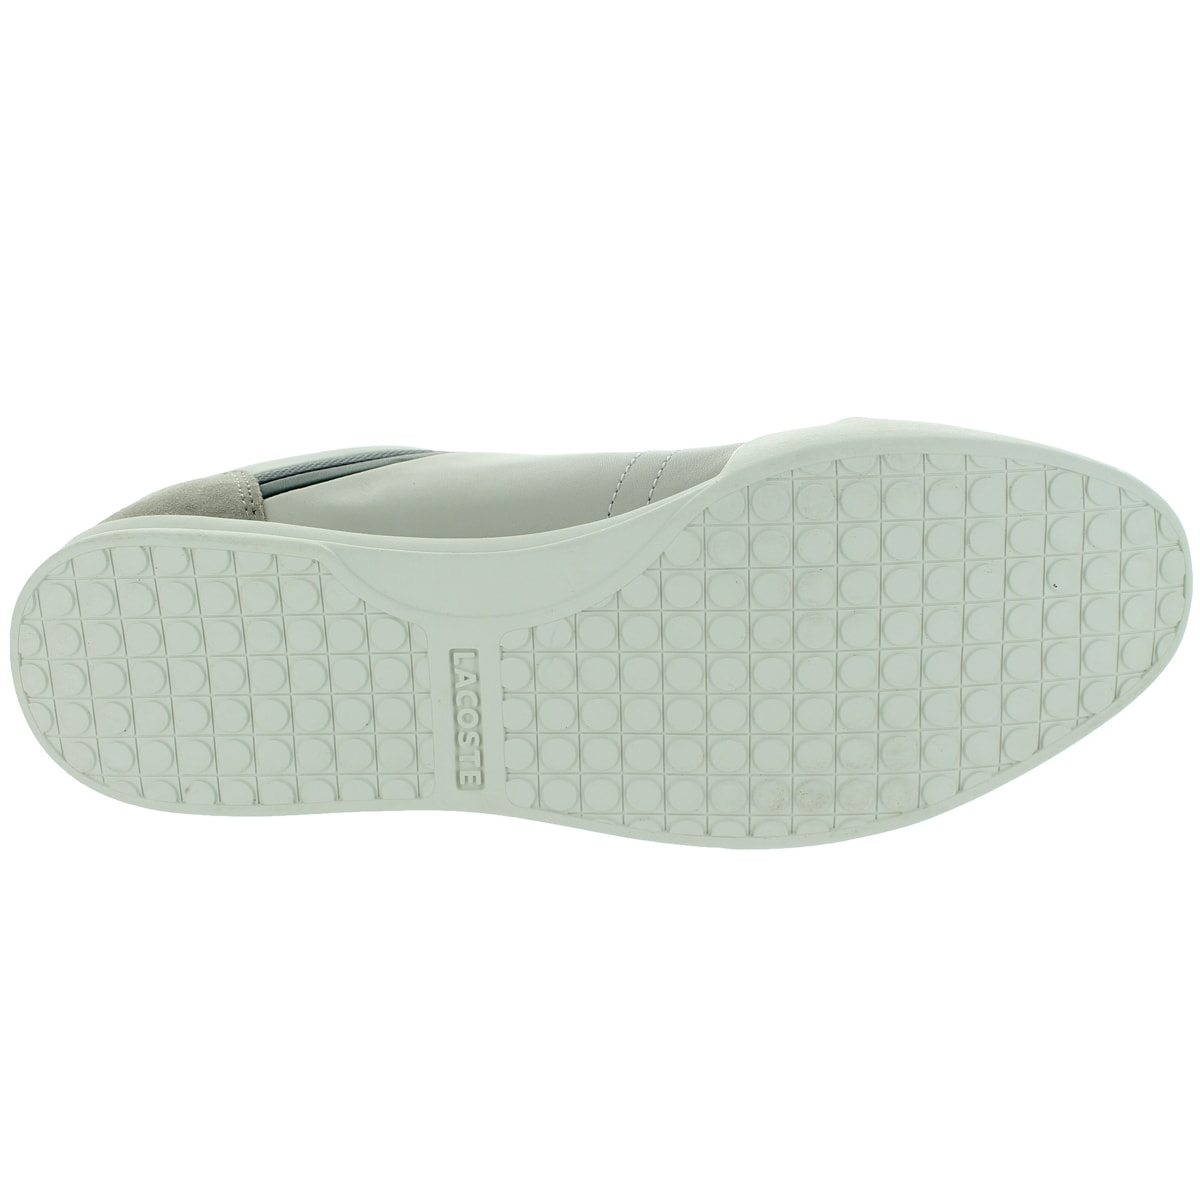 528667a04b033c Shop Lacoste Men s Figuera 3 Srm Off White Casual Shoe - Free Shipping  Today - Overstock - 12330673